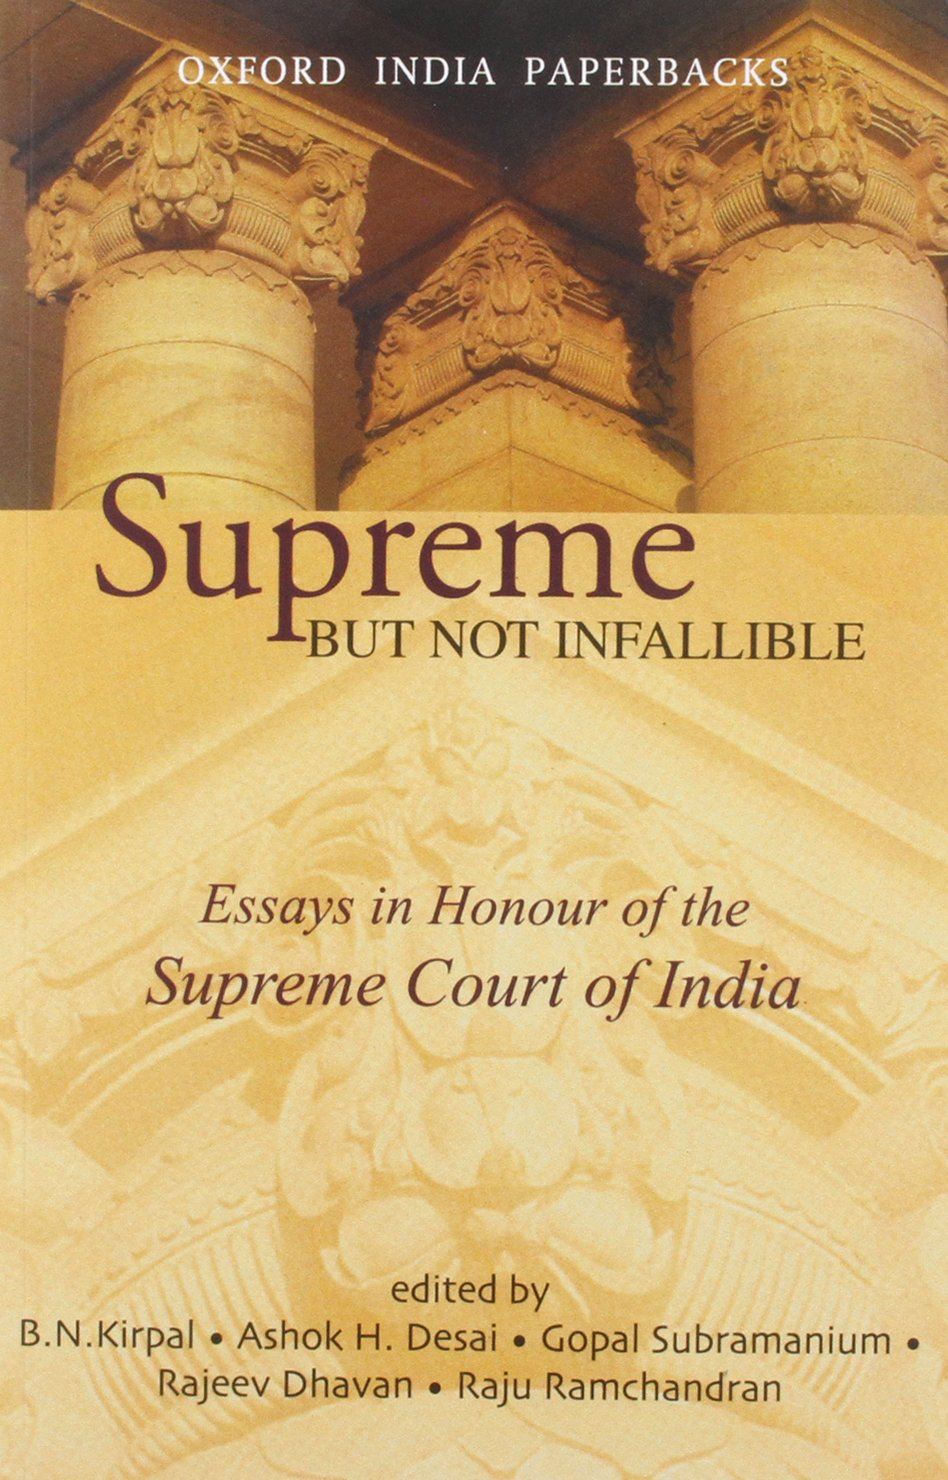 buy supreme but not infallible essays in honour of the supreme buy supreme but not infallible essays in honour of the supreme court of book online at low prices in supreme but not infallible essays in